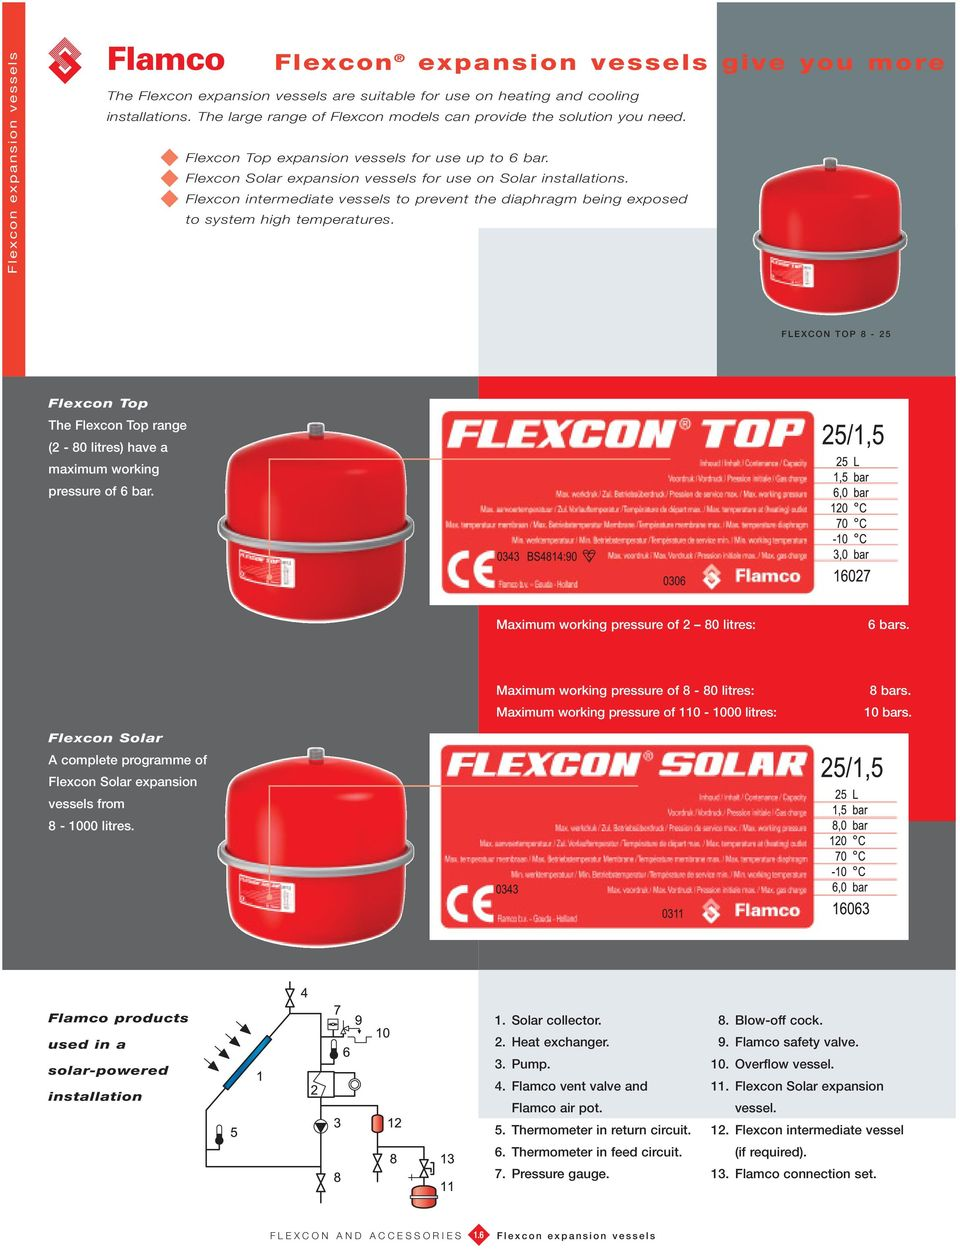 Flexcon intermediate vessels to prevent the diaphragm being exposed to system high temperatures.